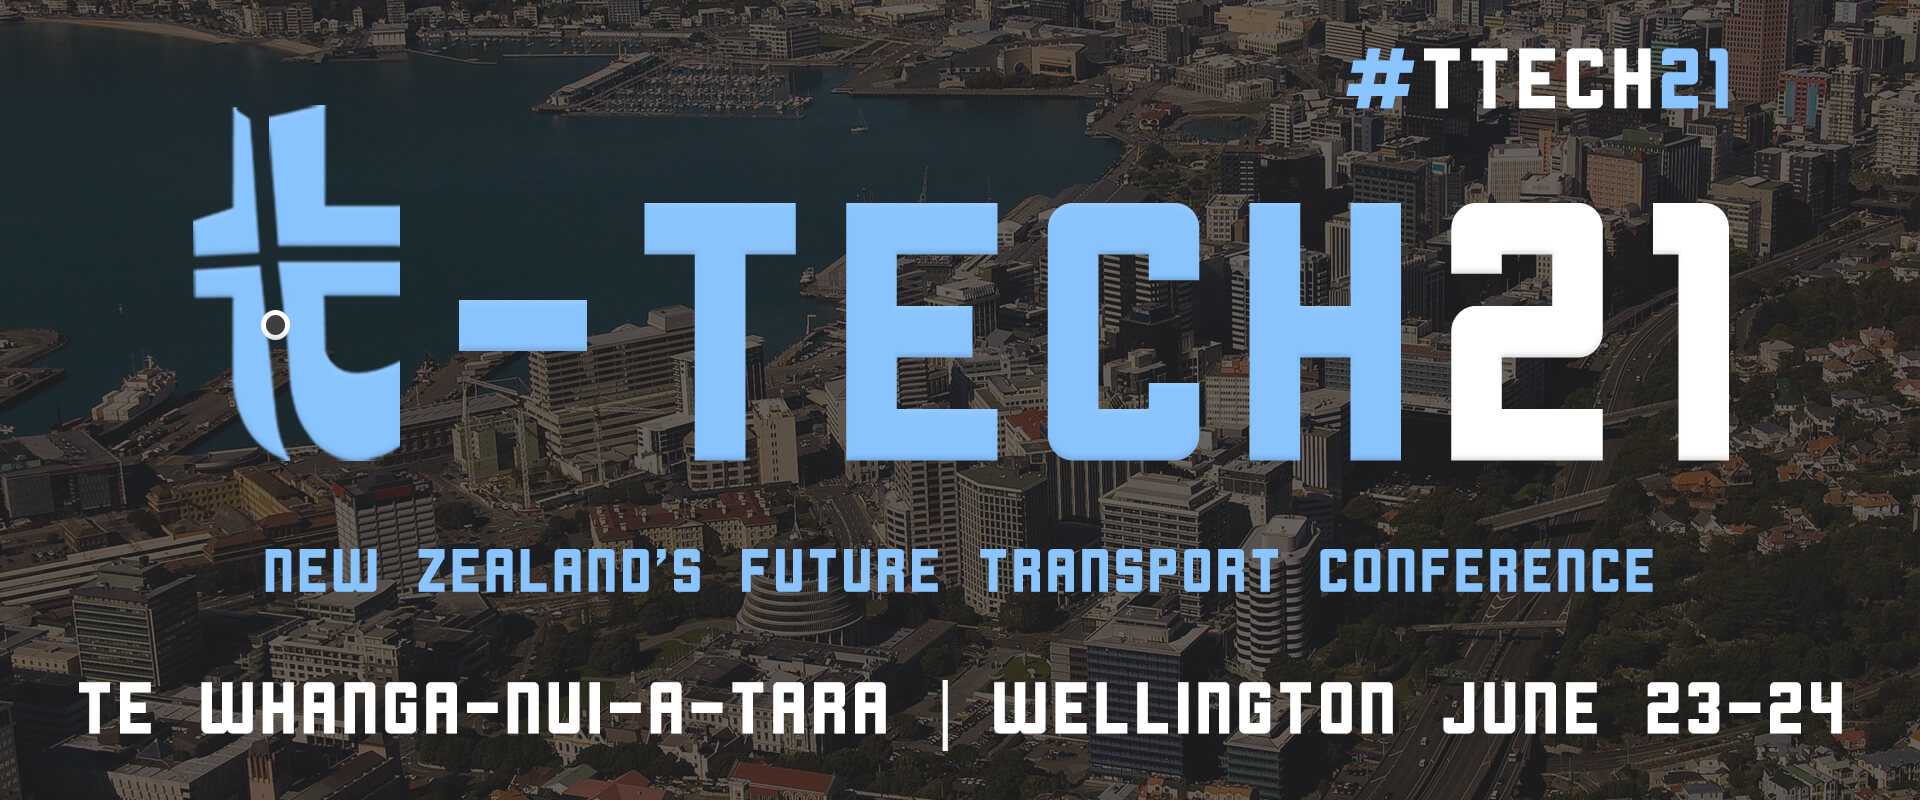 T-Tech Future Transport Conference by ITS New Zealand